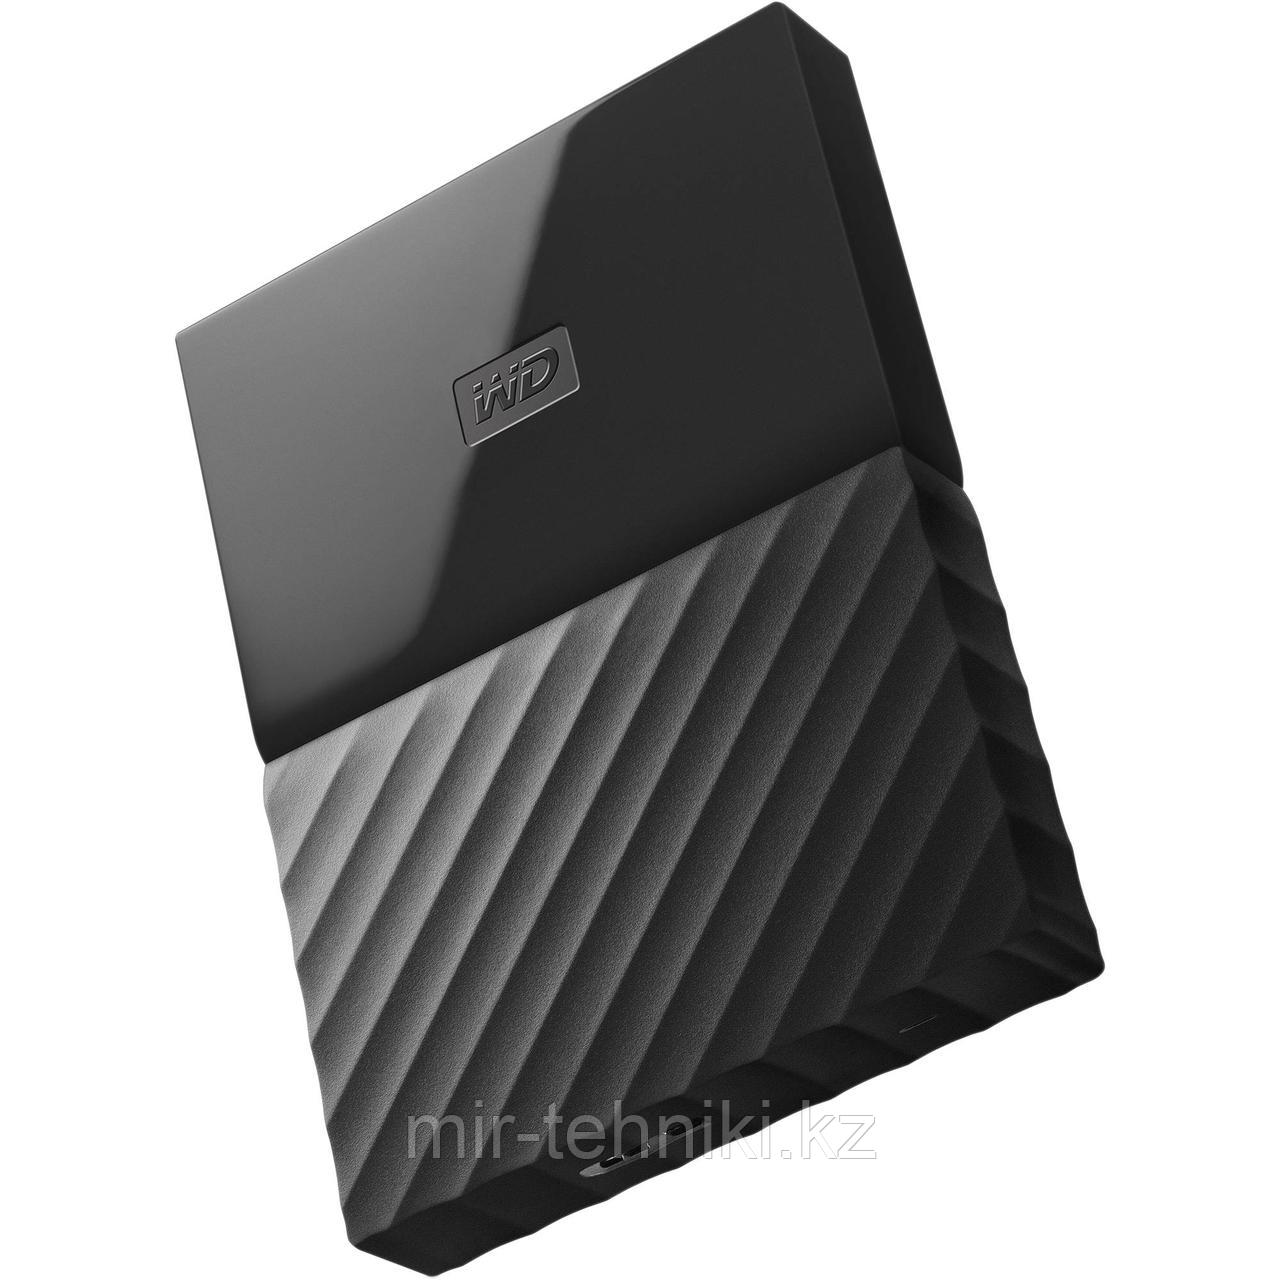 Внешний HDD  Wd my passport 2TB USB3.0 HARD DRIVE